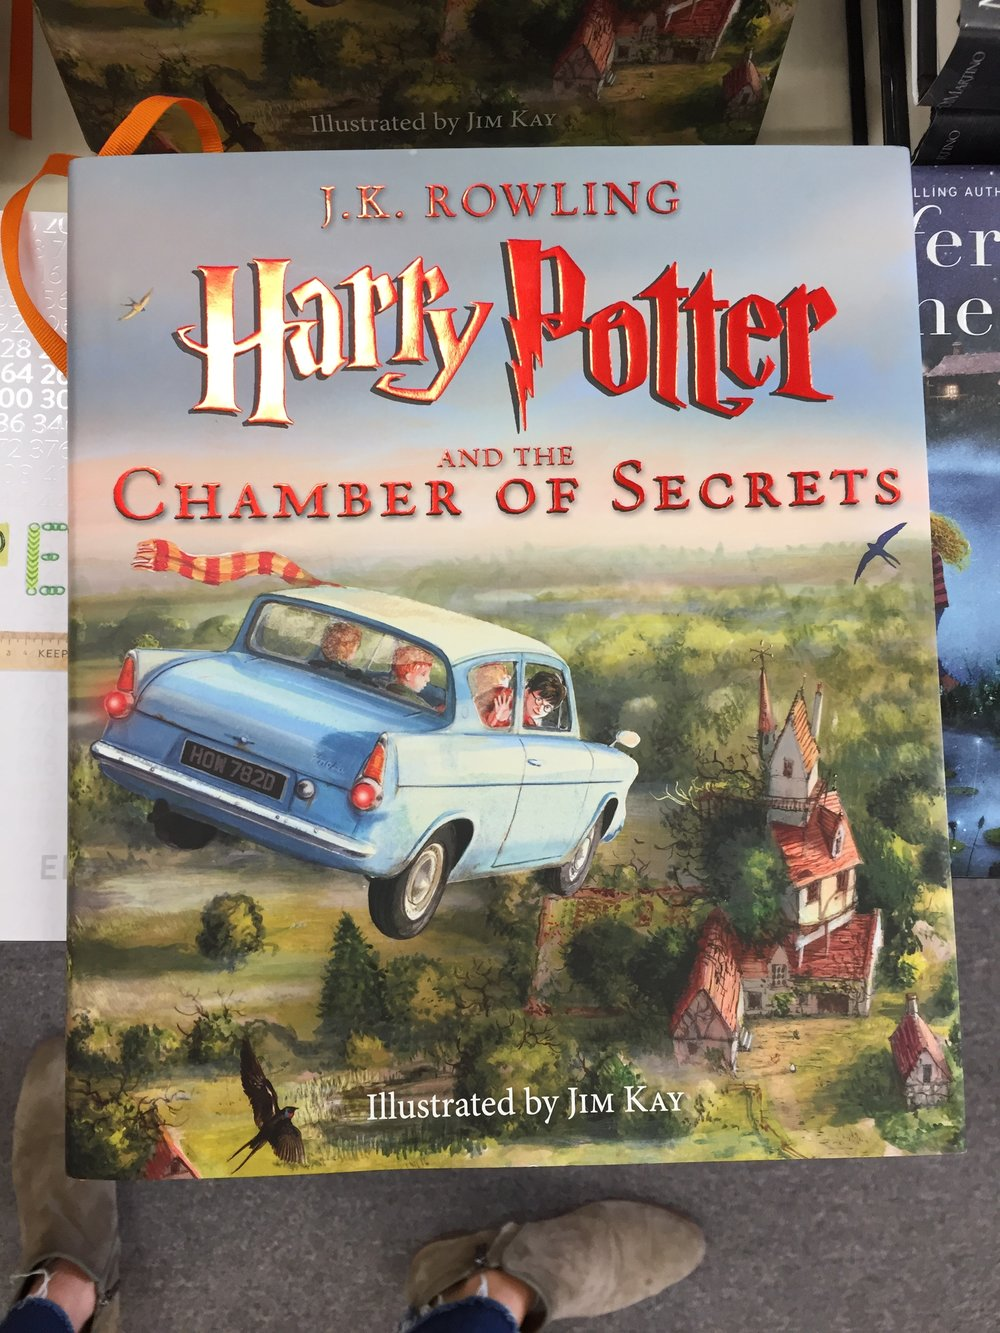 For the Harry Potter lover, beautifully illustrated. $39.99